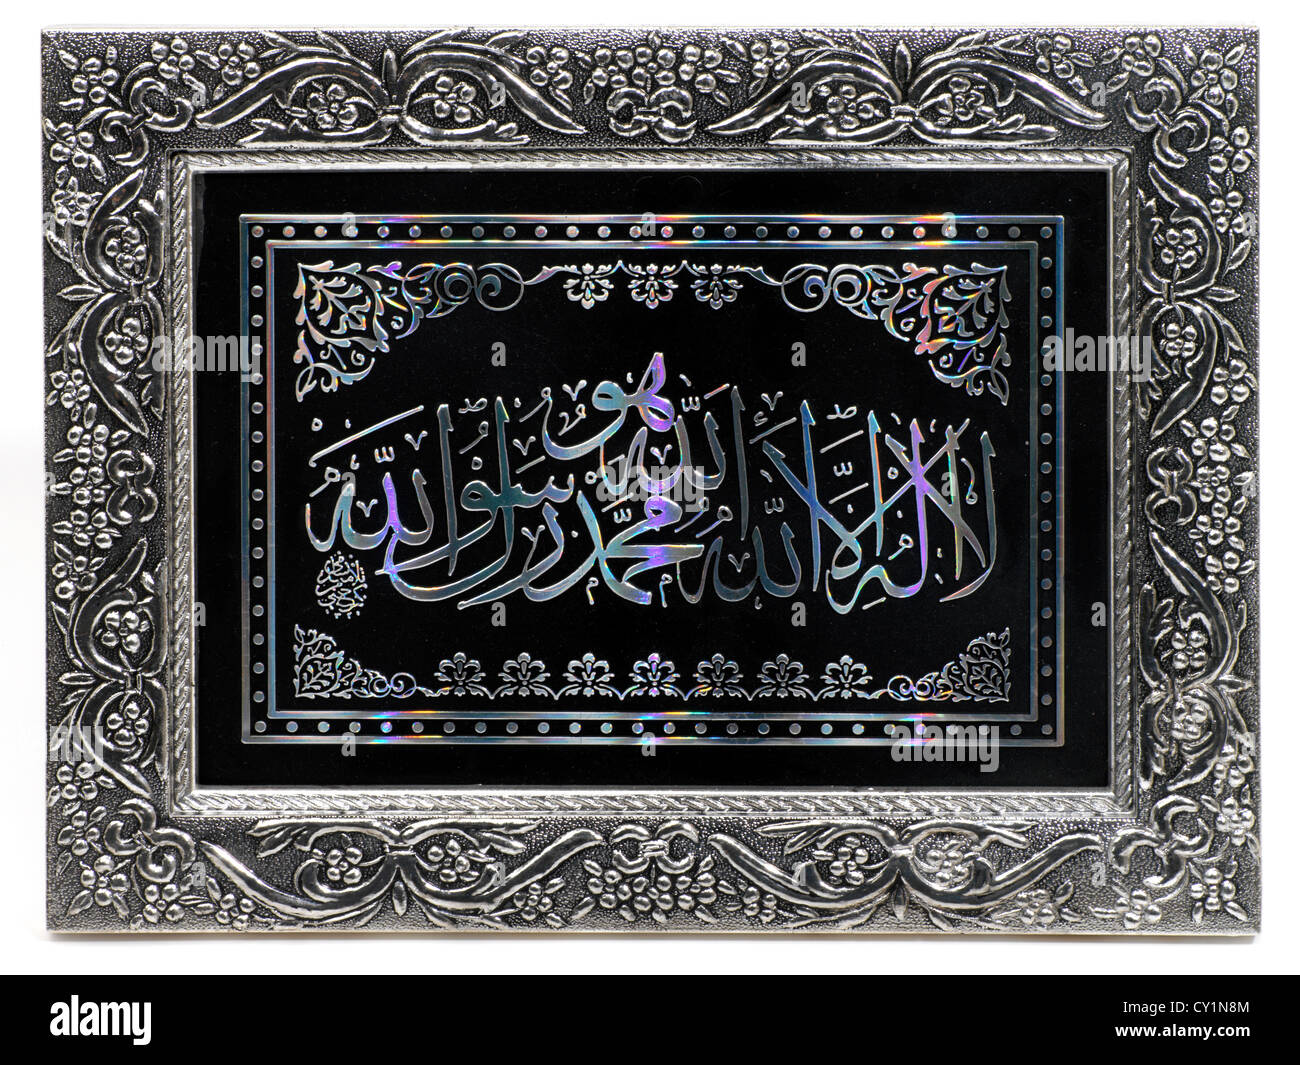 Islamic Calligraphy There is no Diety Worthy of Worship except Allah alone and Muhammad is His Messenger - Stock Image